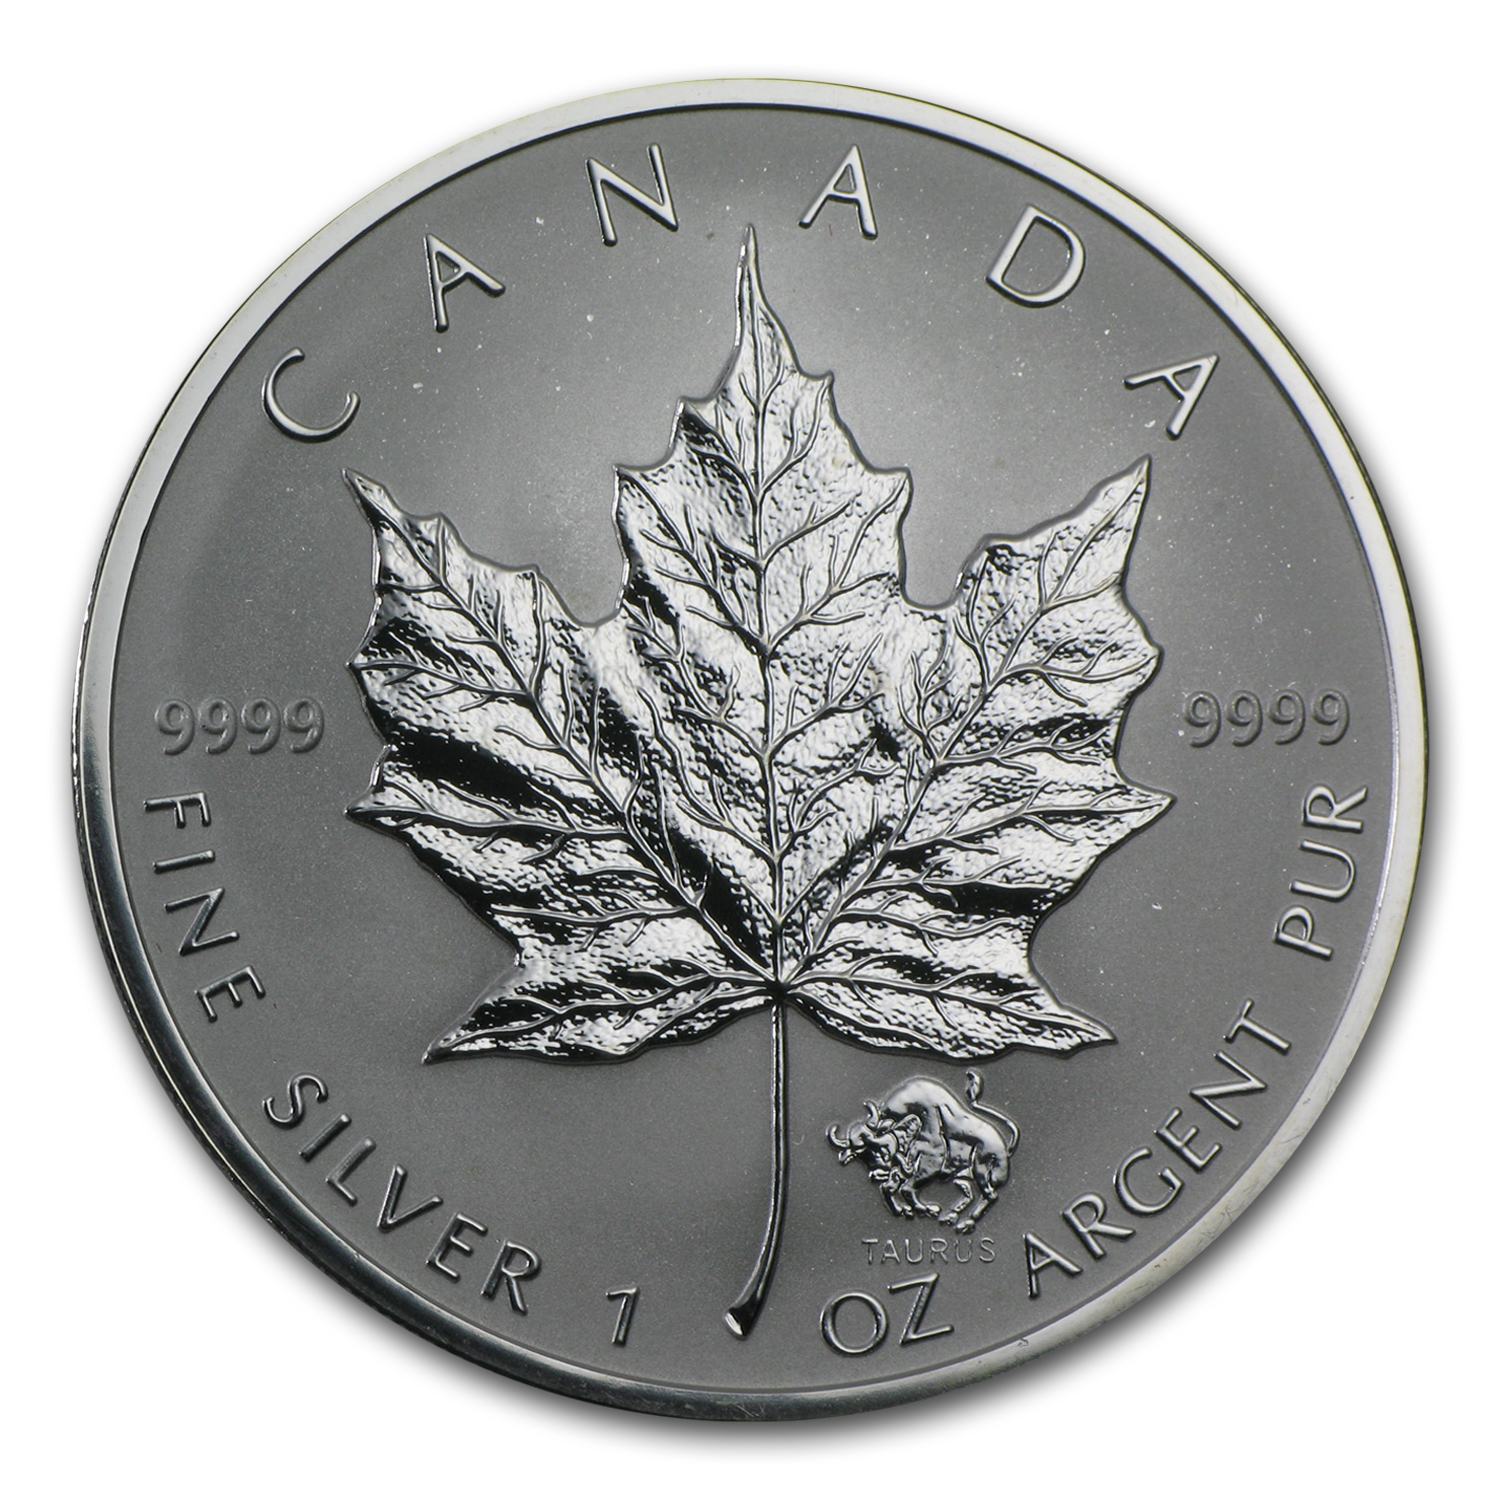 2004 Canada 1 oz Silver Maple Leaf Taurus Zodiac Privy